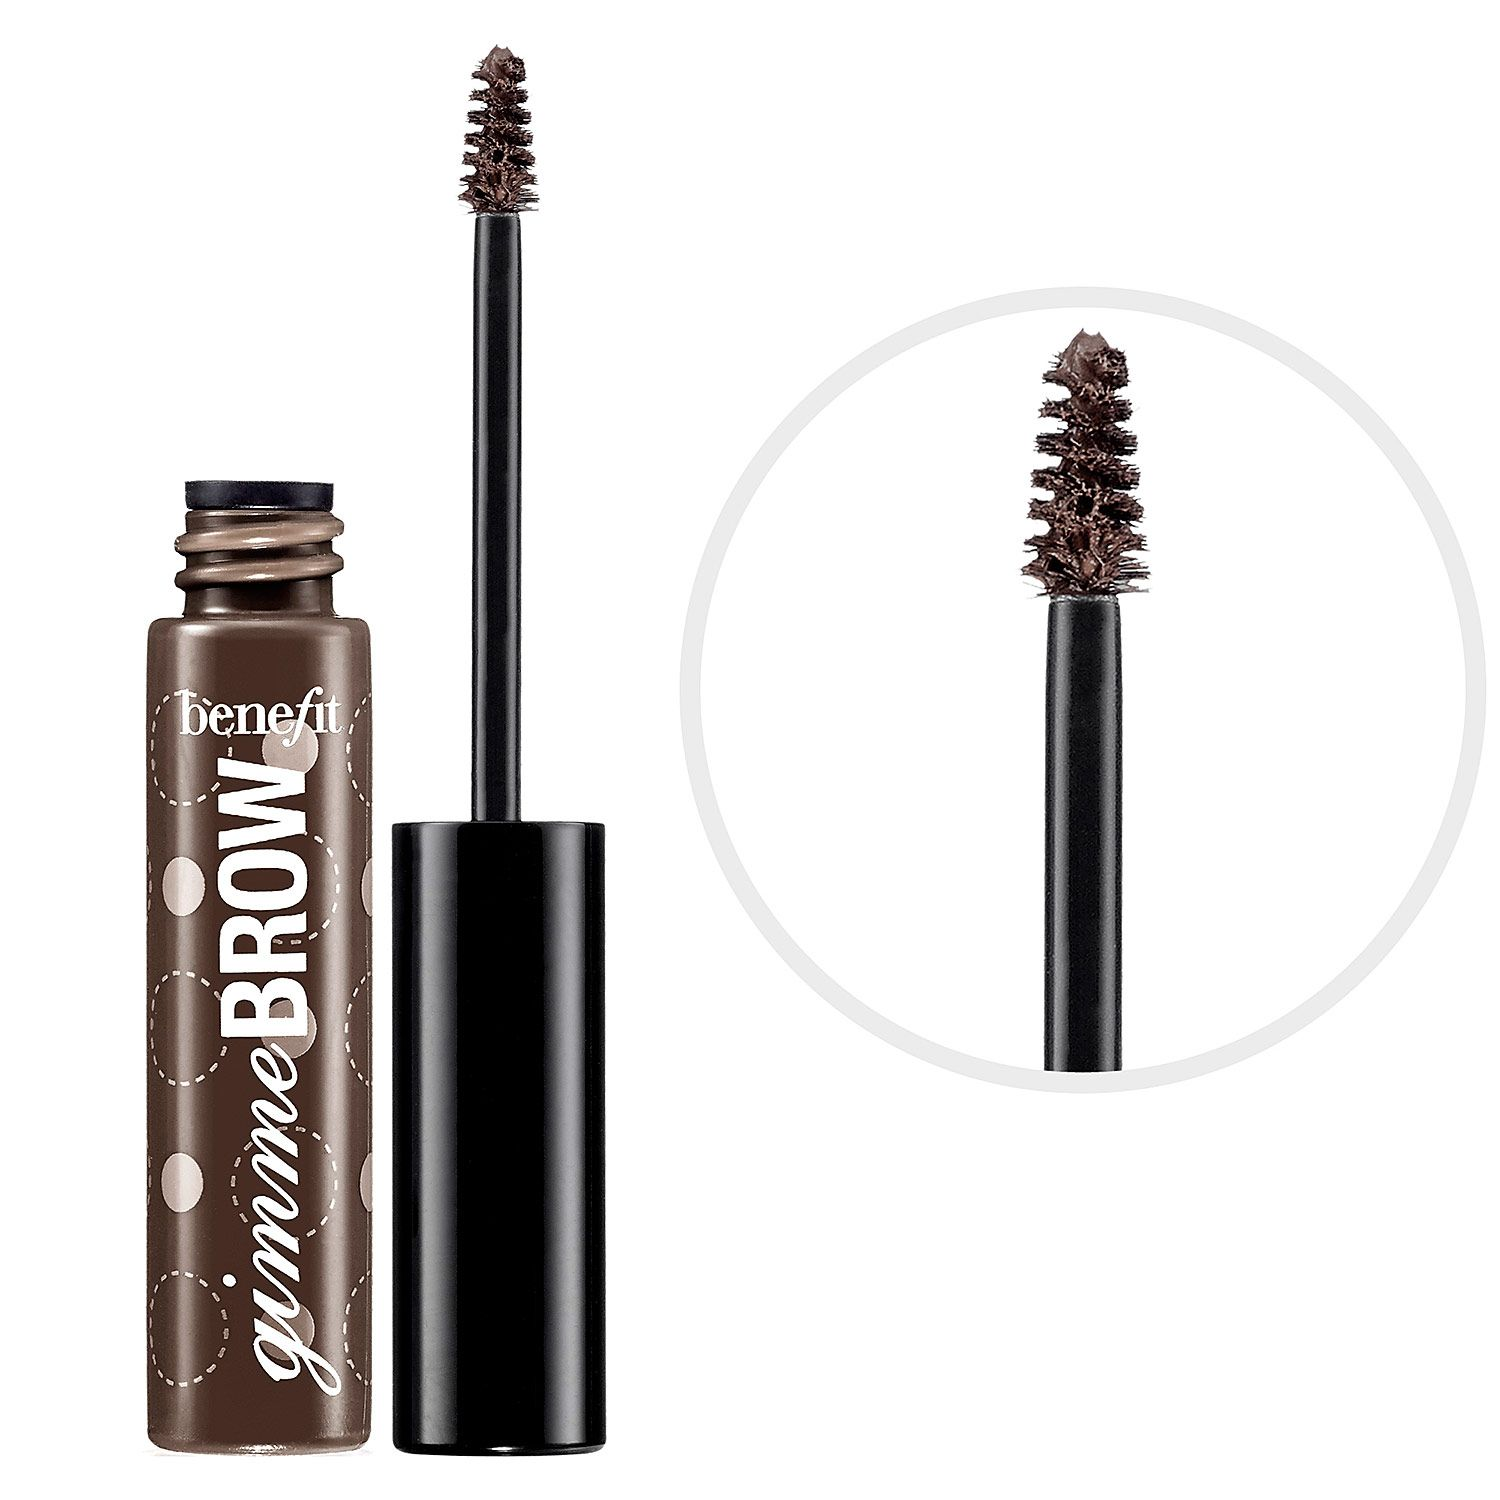 Most-loved brow products: Benefit Gimme Brow—a brow-volumizing ...